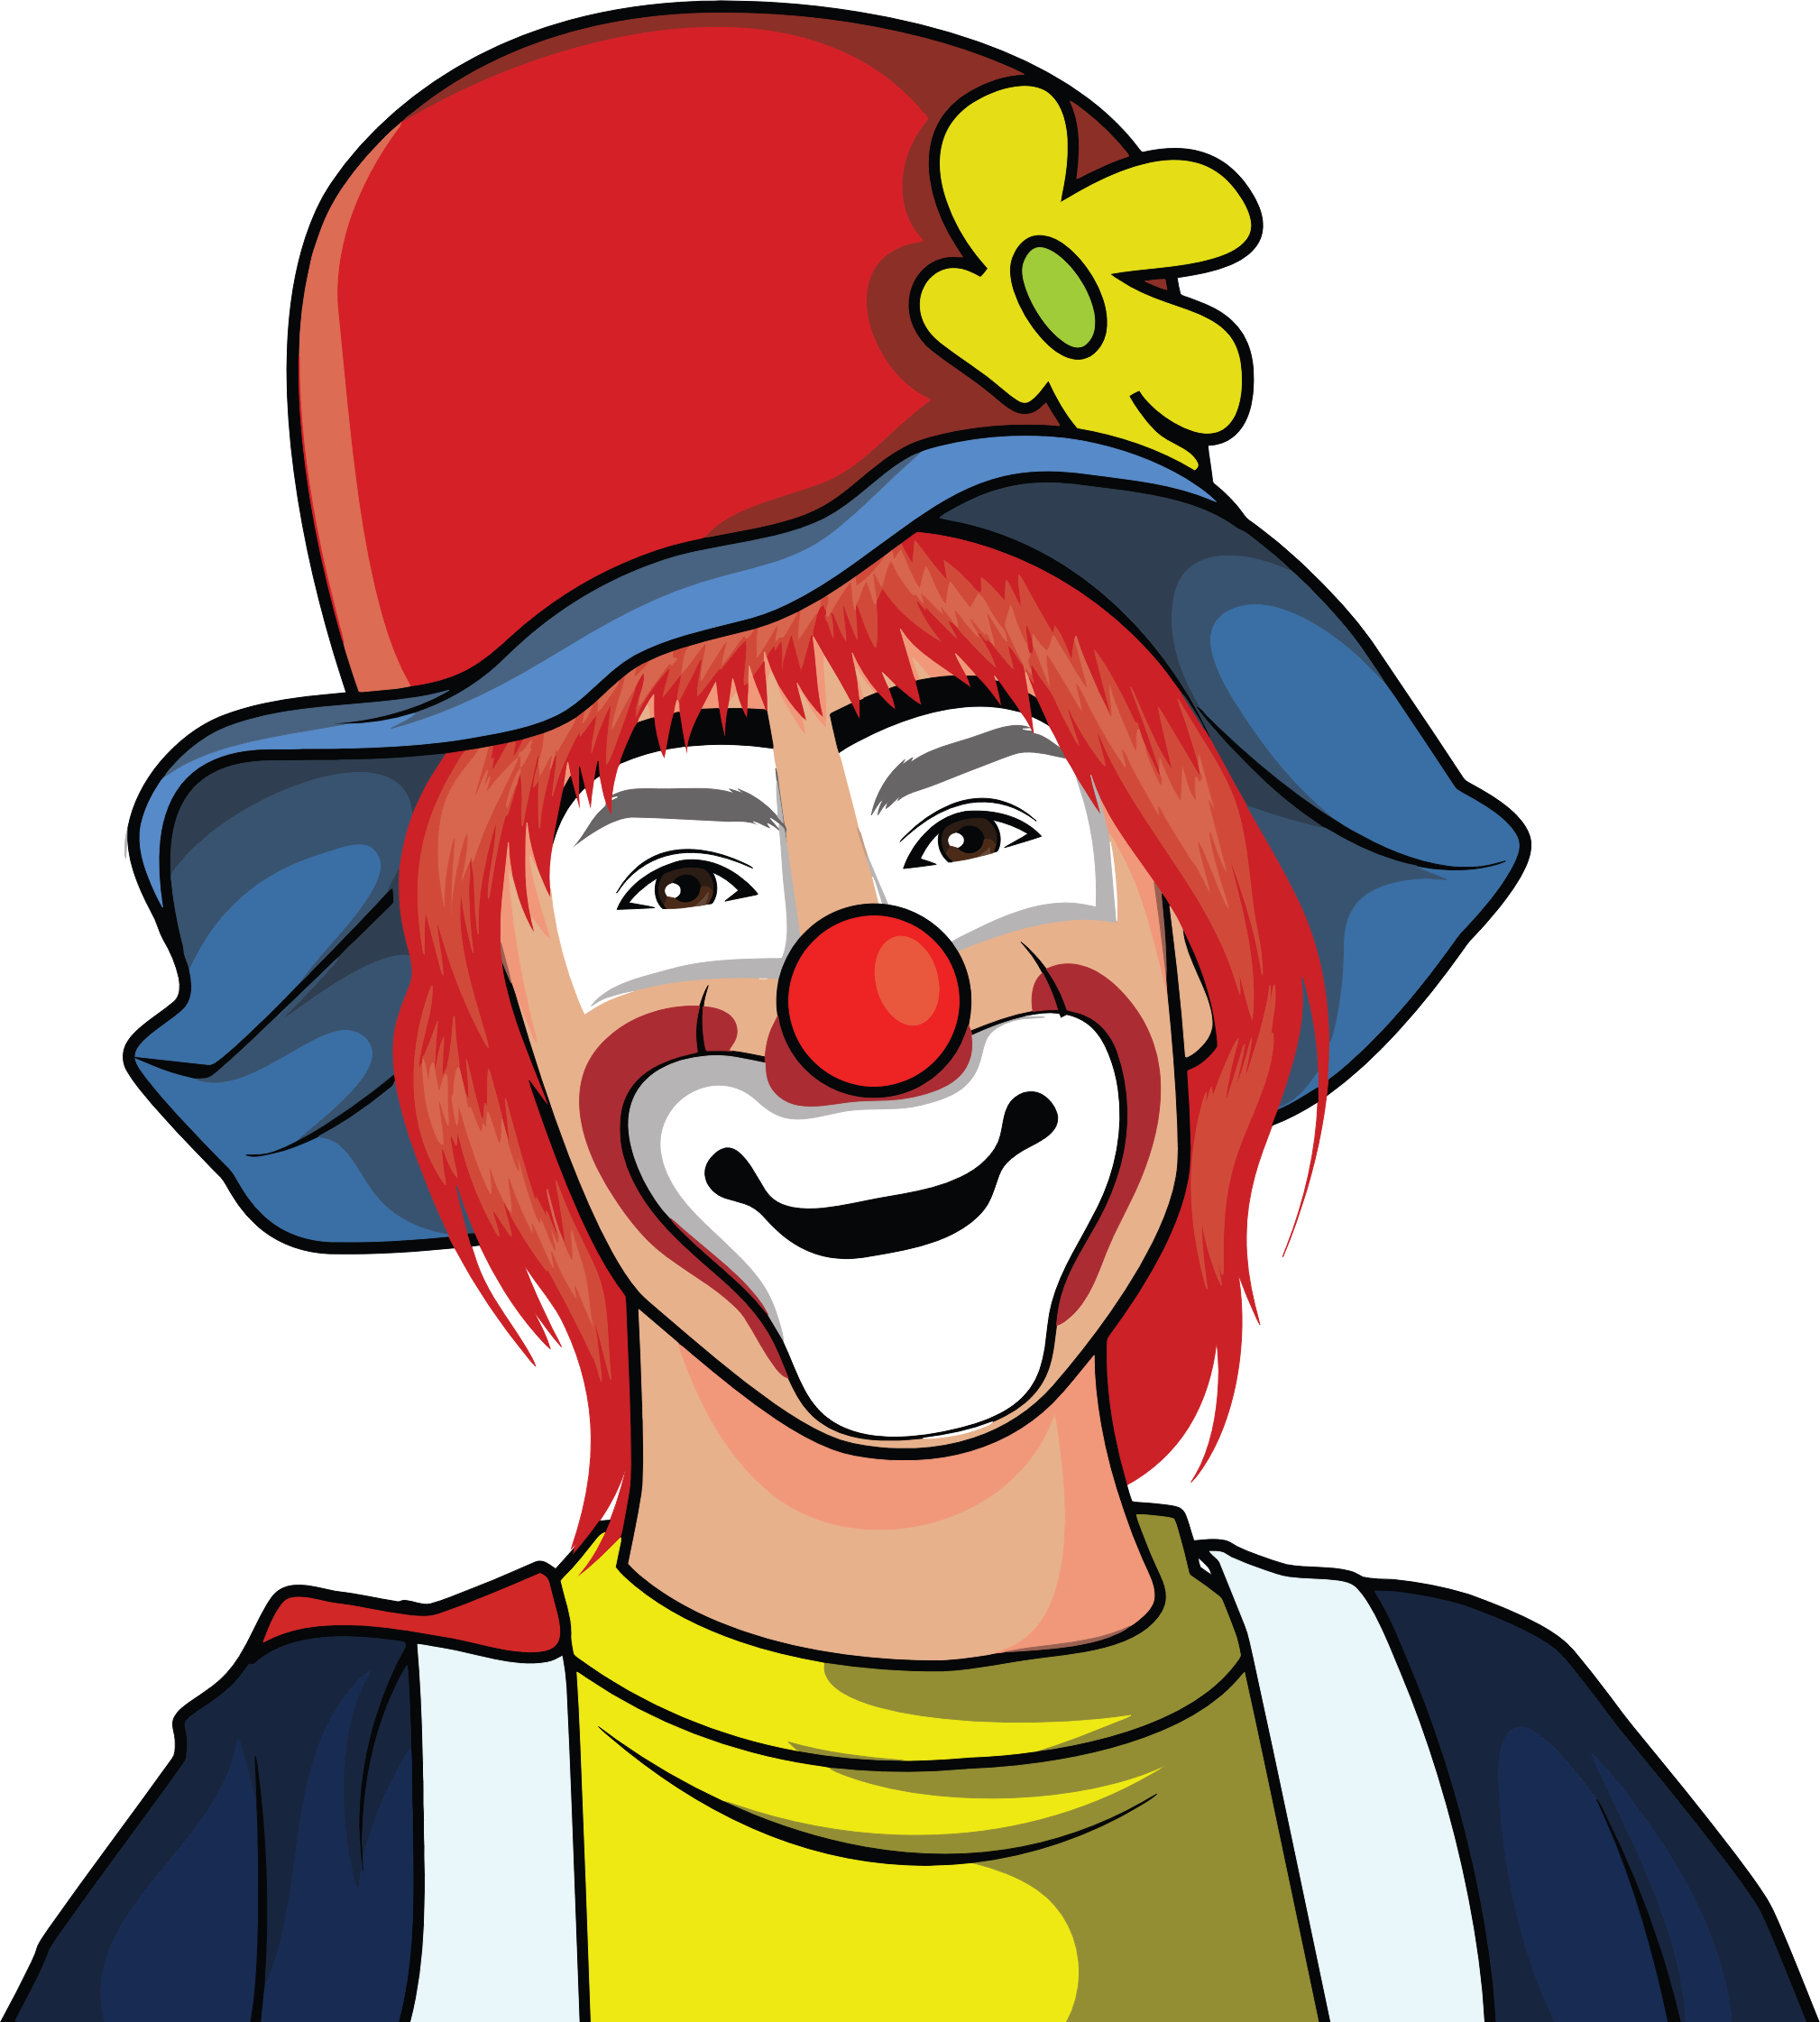 Clown Illustration by GDJ